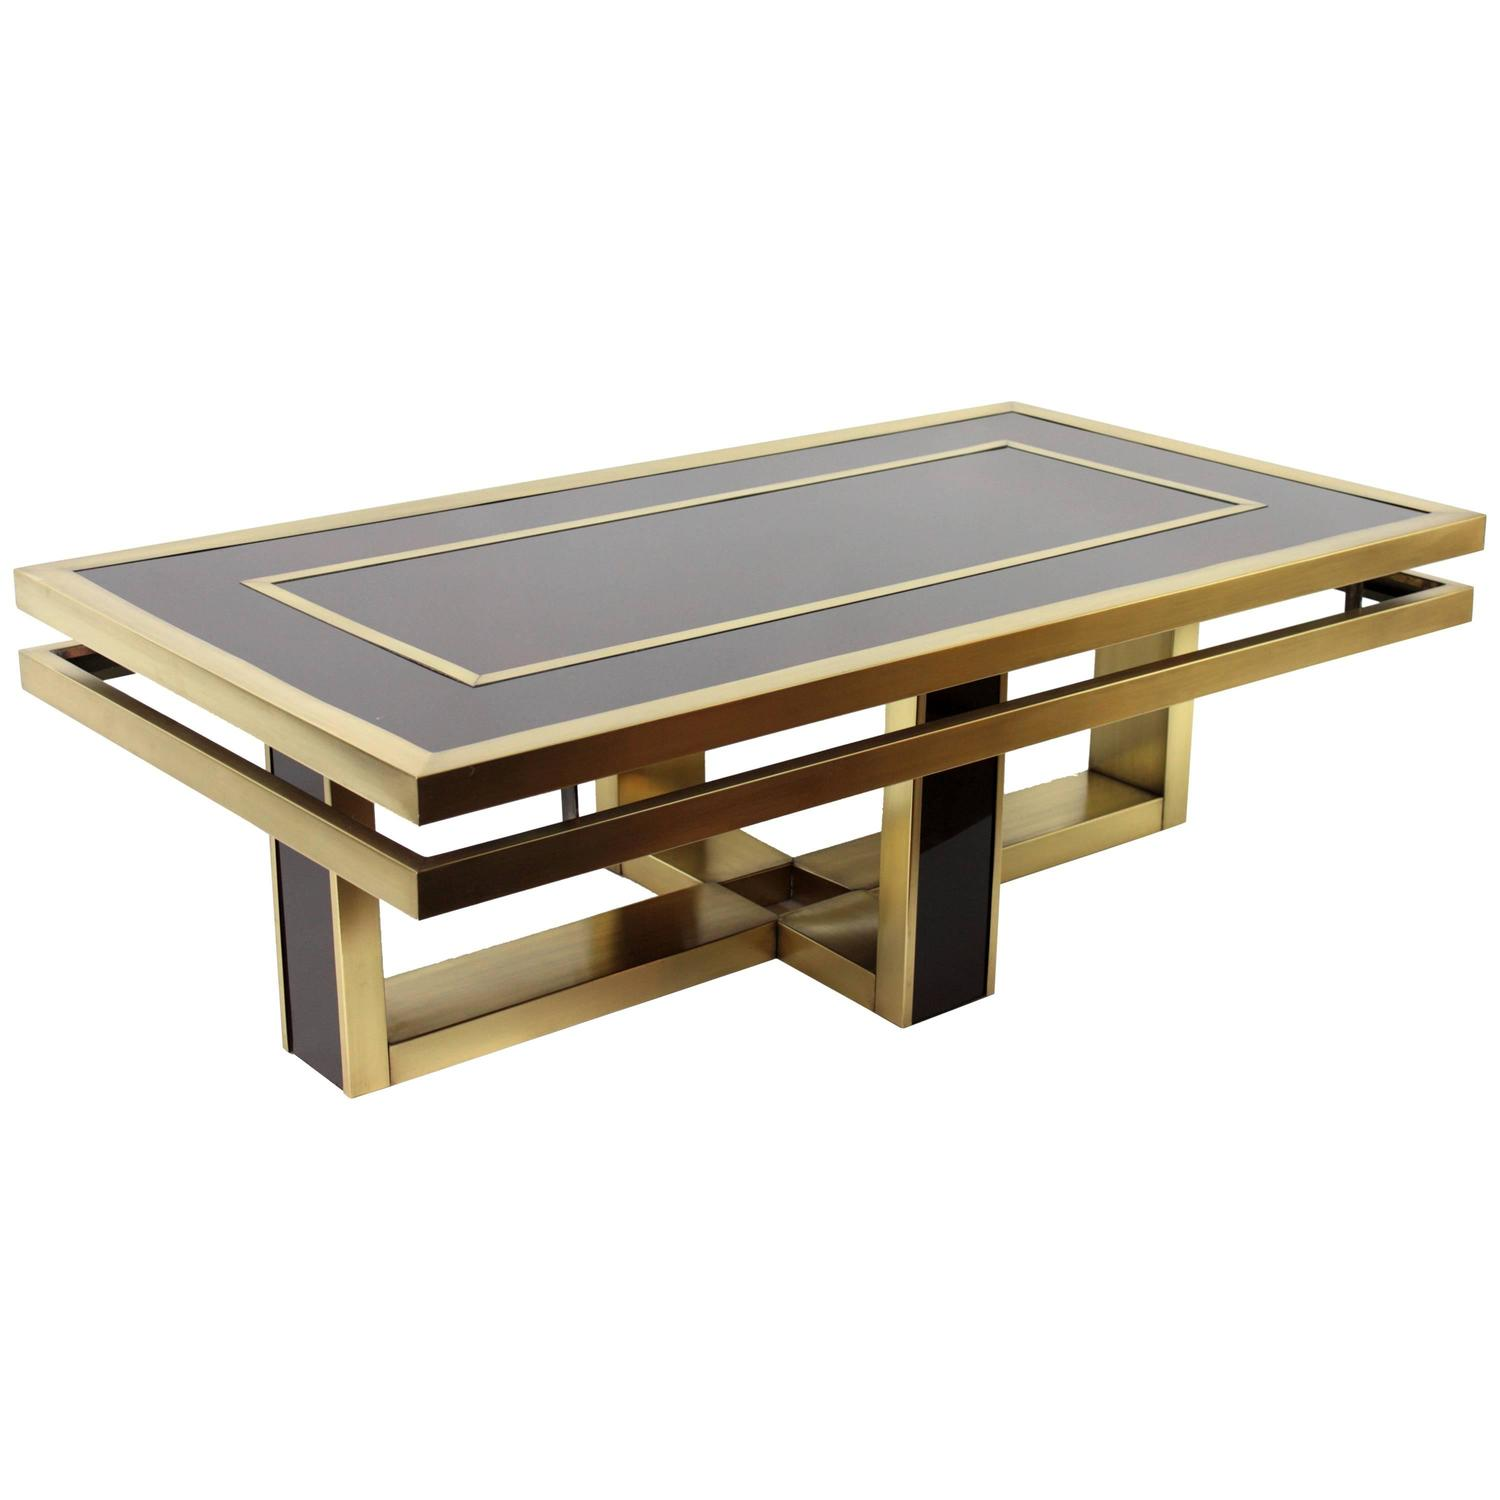 Italian 1960s Brown Glass And Brass Coffee Table In The Style Of Romeo Rega At 1stdibs